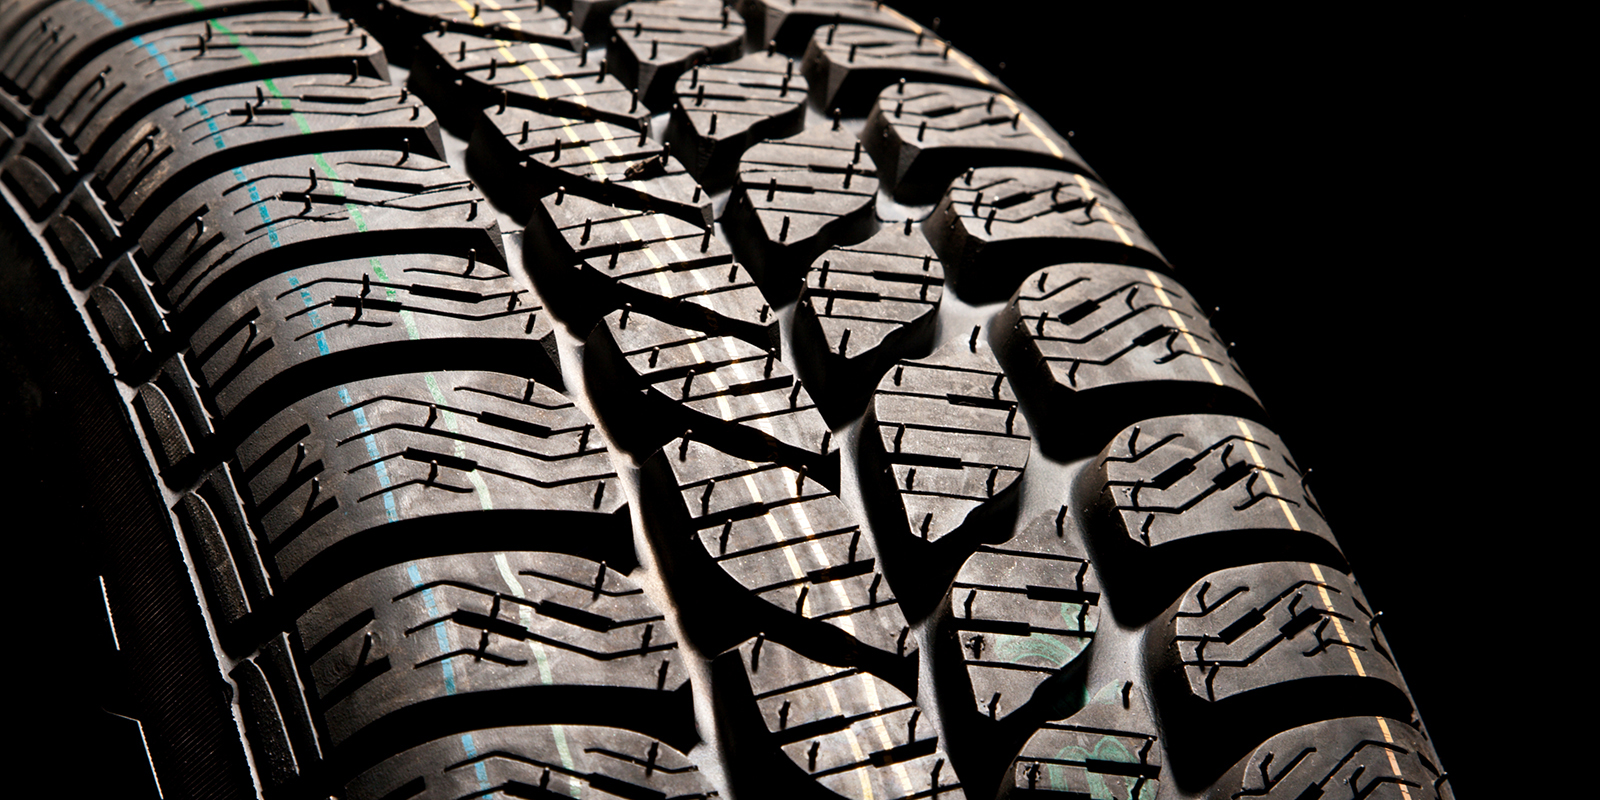 All major brands of tires, affordably priced at Carmichael's Auto